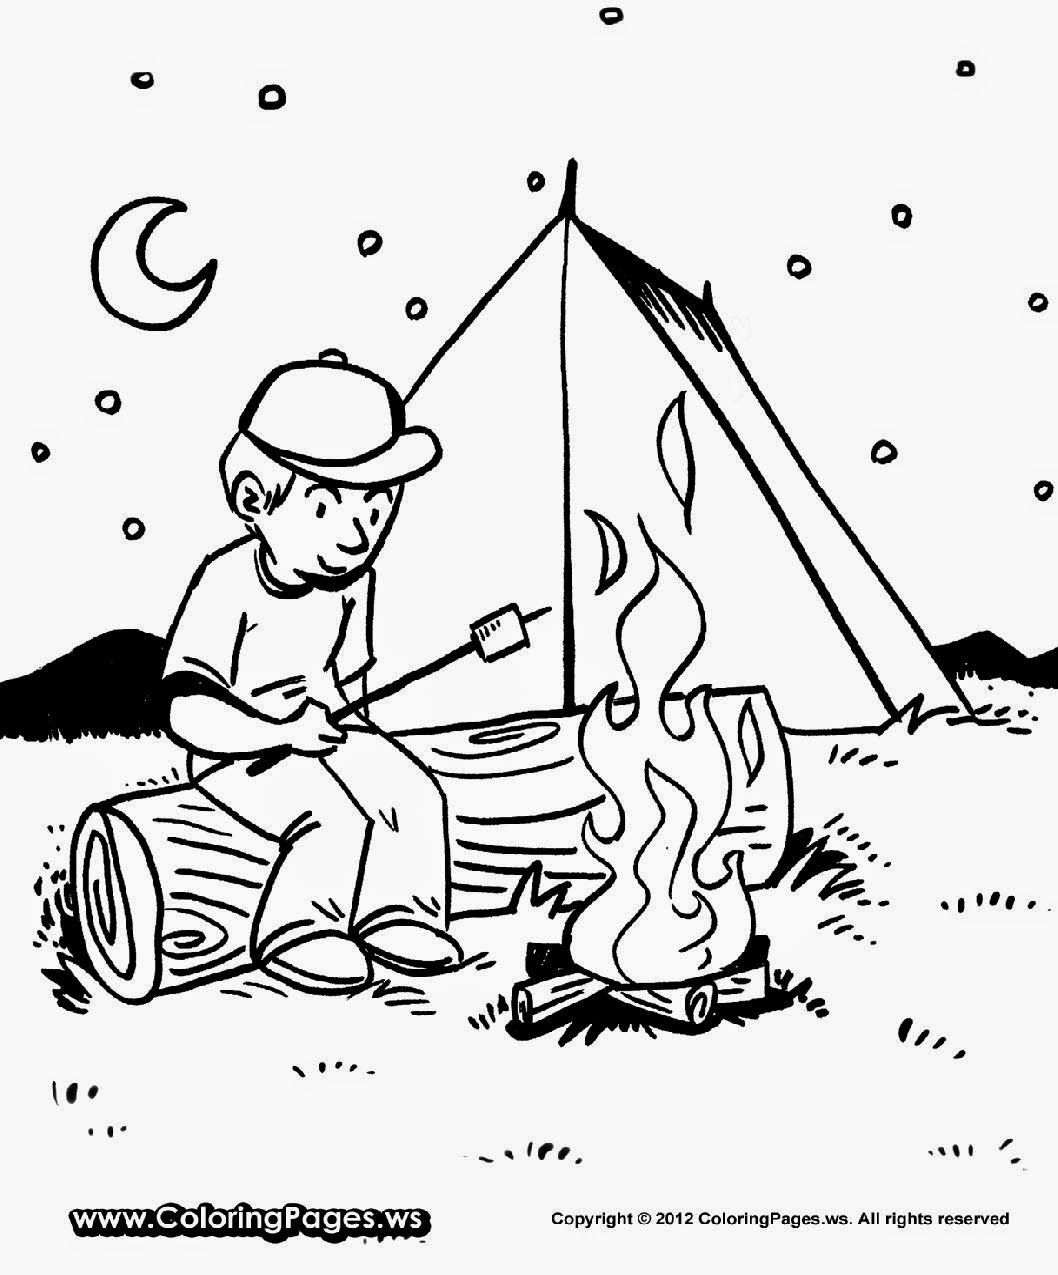 Free coloring pages ws - Camping Coloring Pages Free Coloring Pages